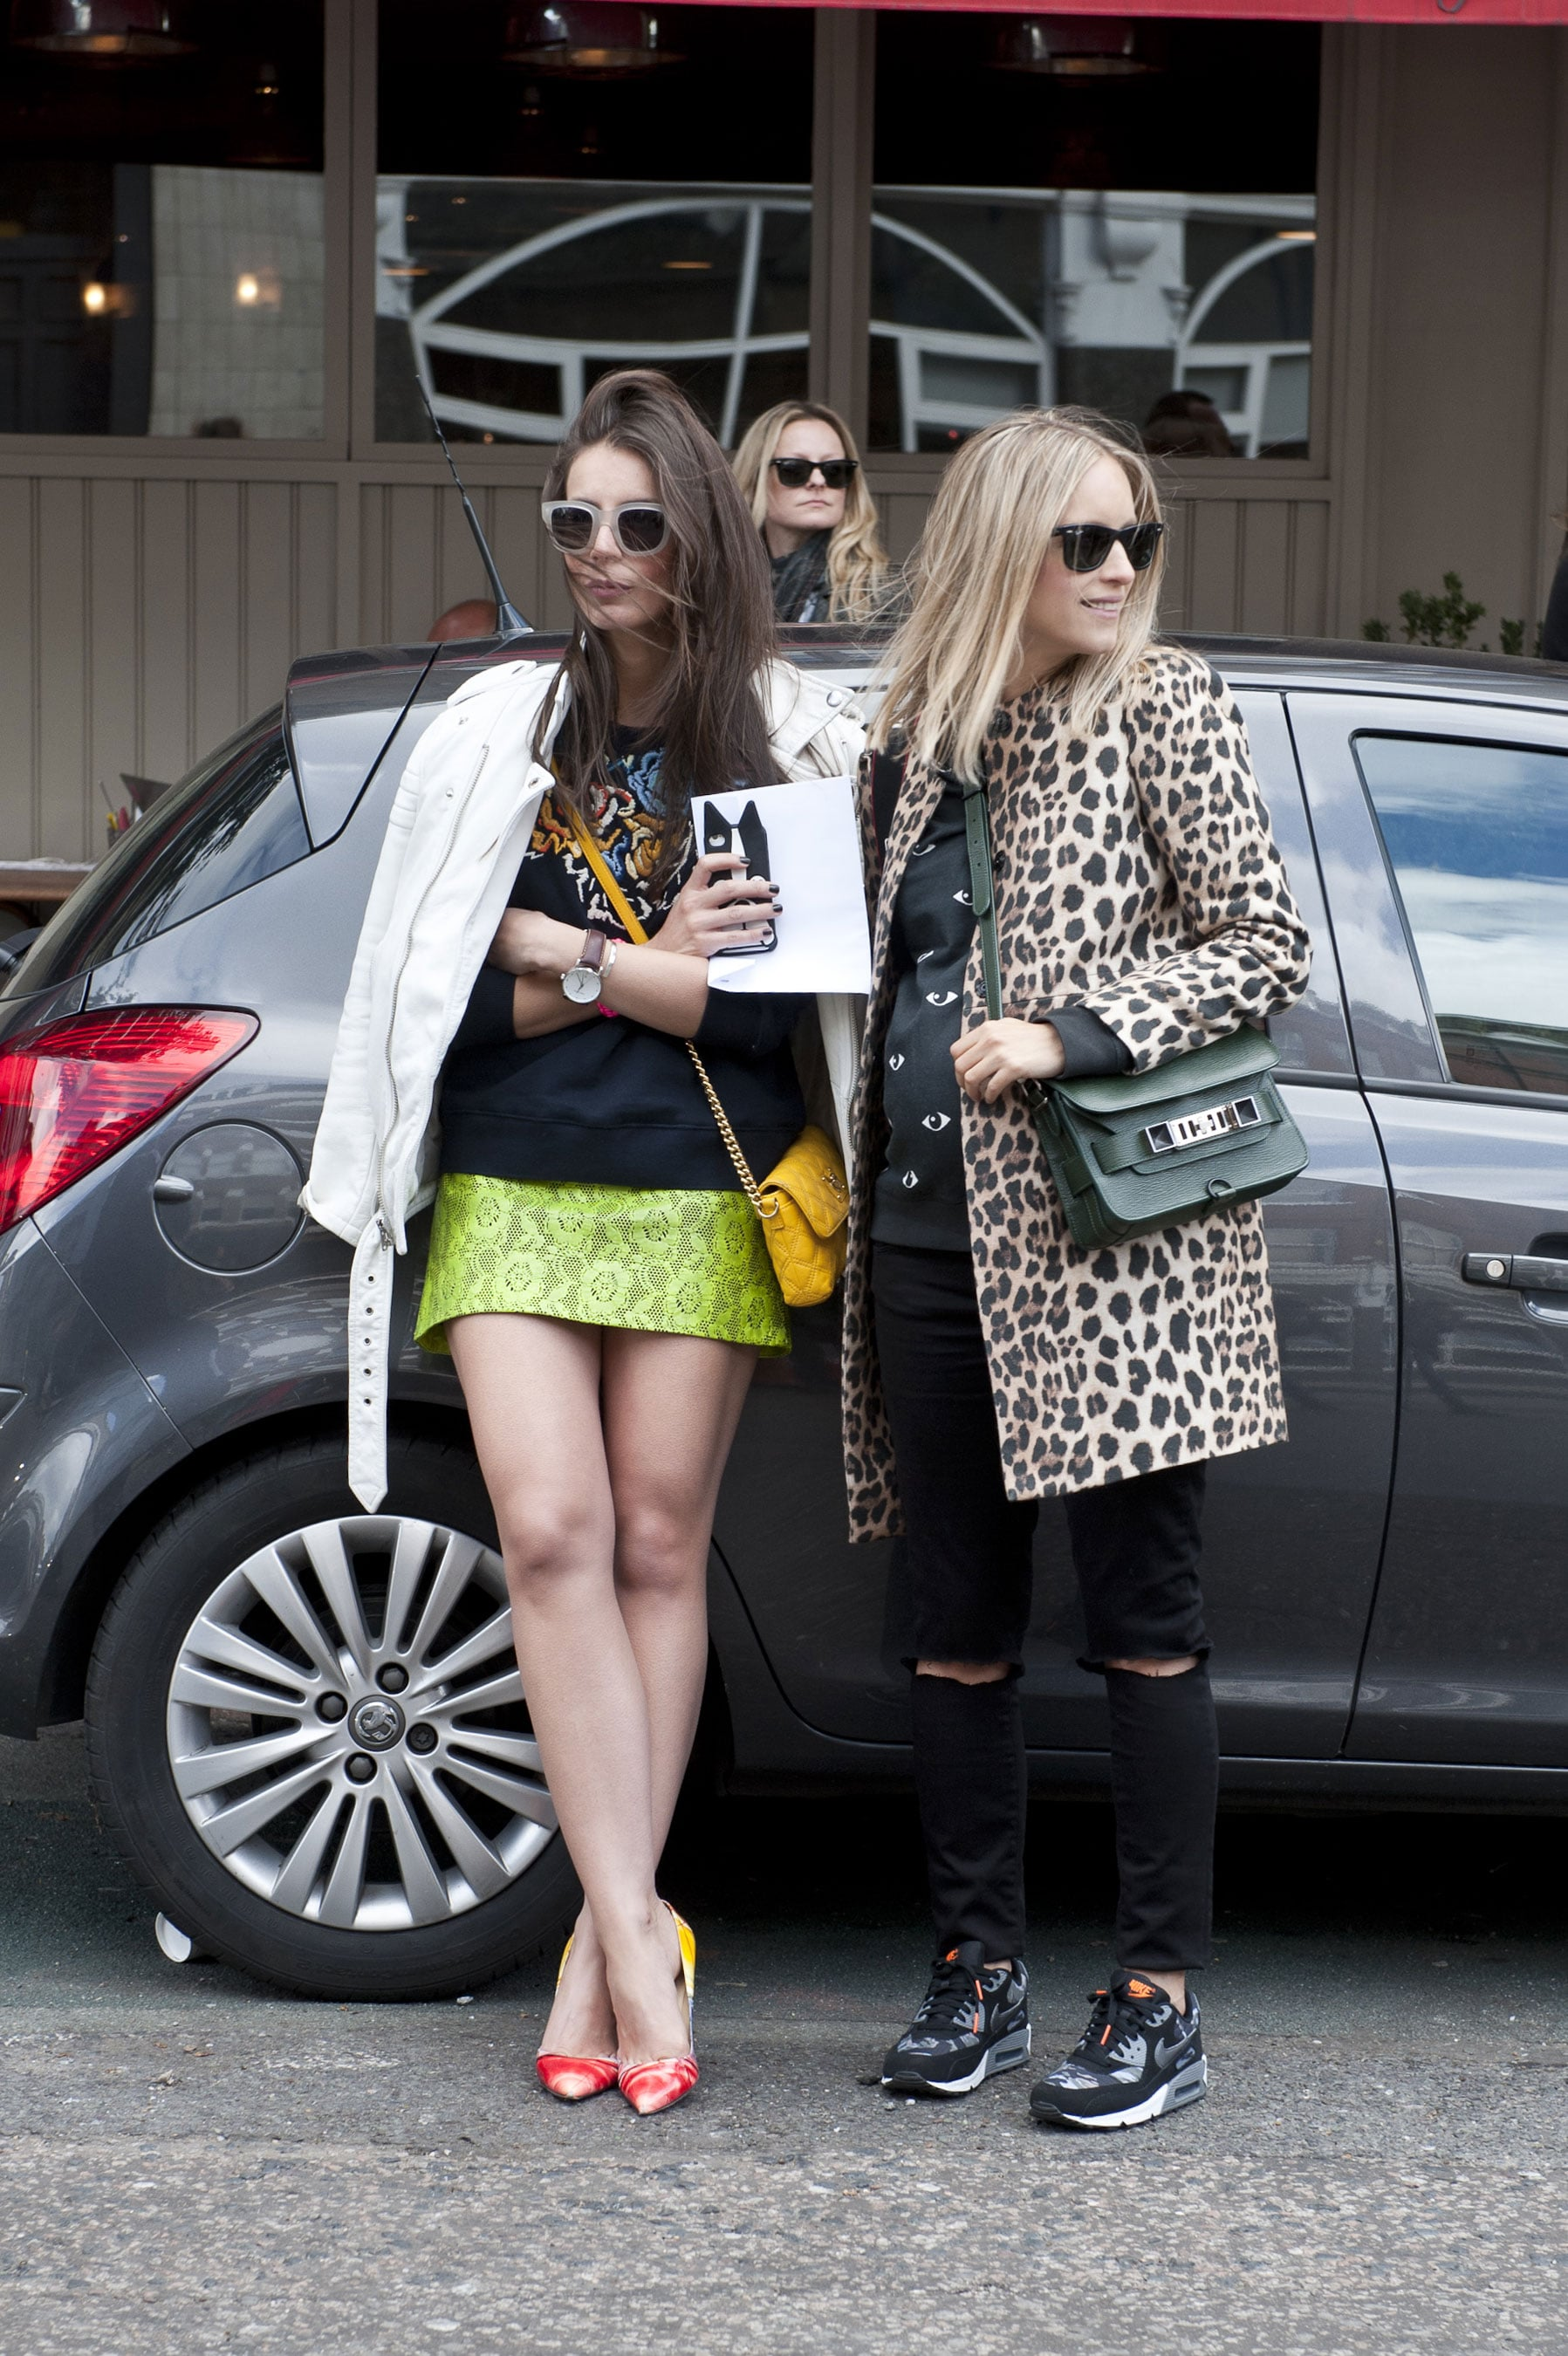 One look and you know this on-trend pair must be headed to Fashion Week.